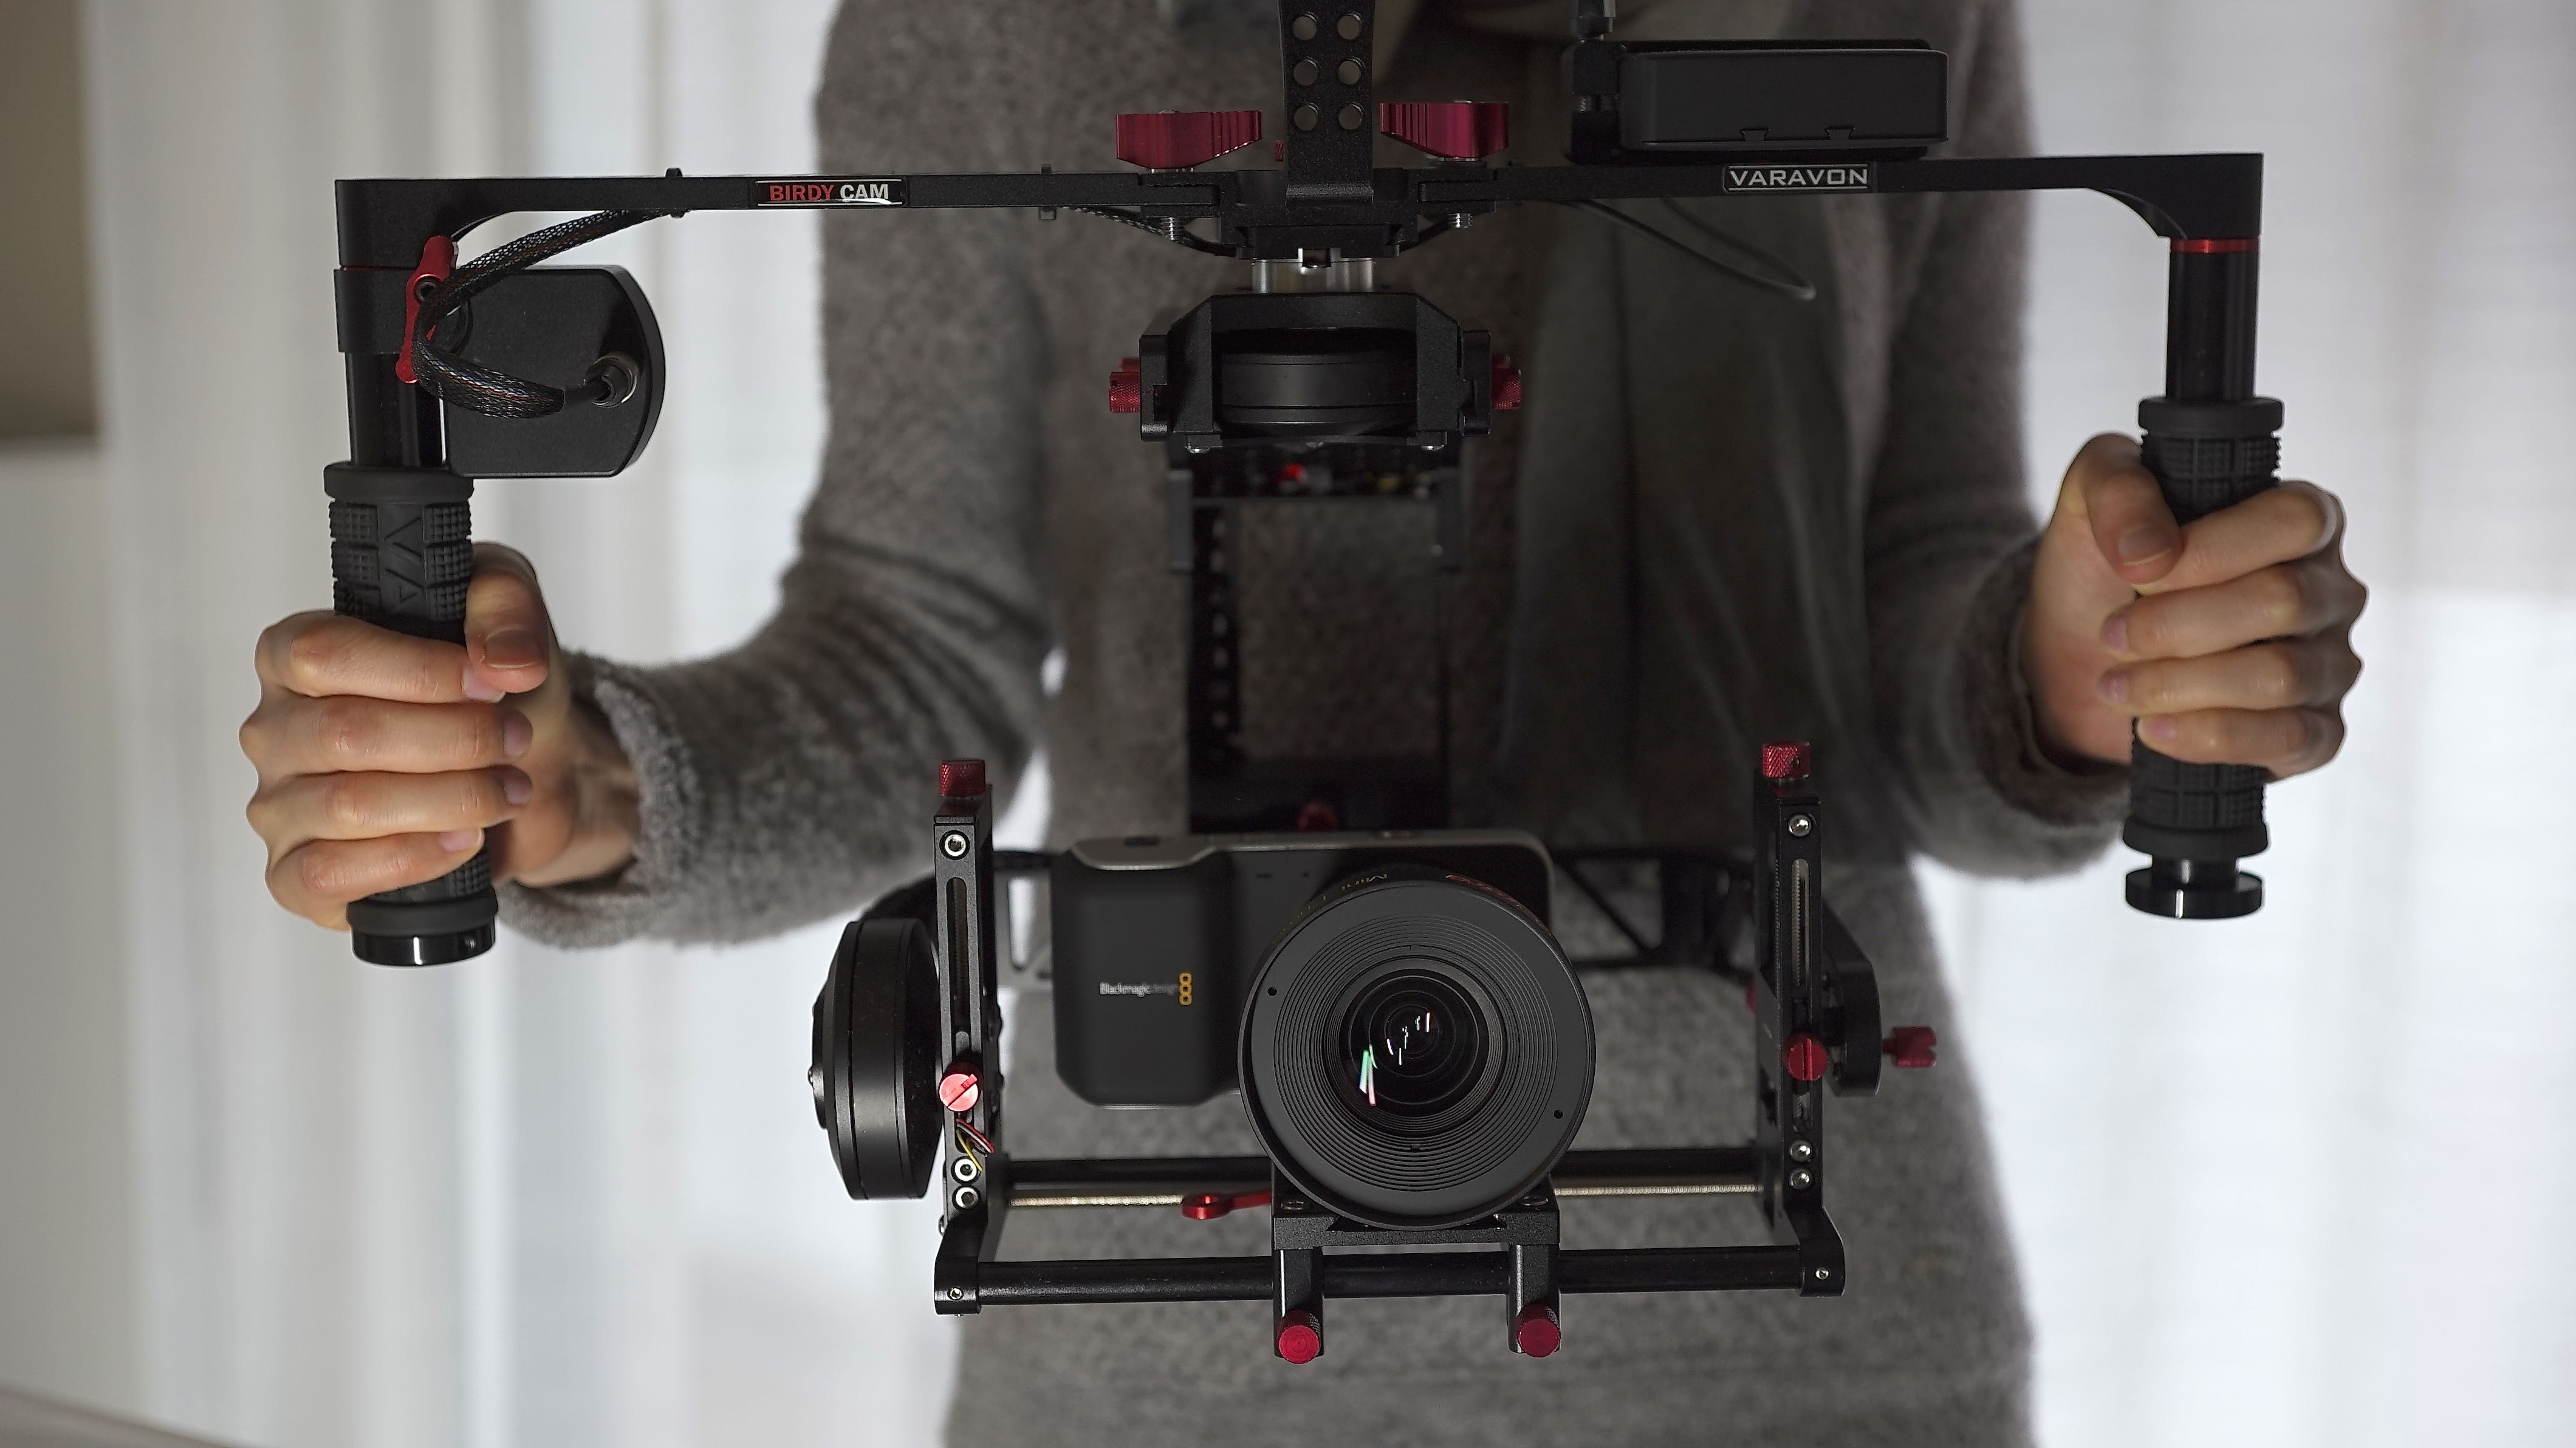 The Well Priced Varavon Birdycam Ii Brushless Gimbal Is It Good For News And Documentary Work Newsshooter